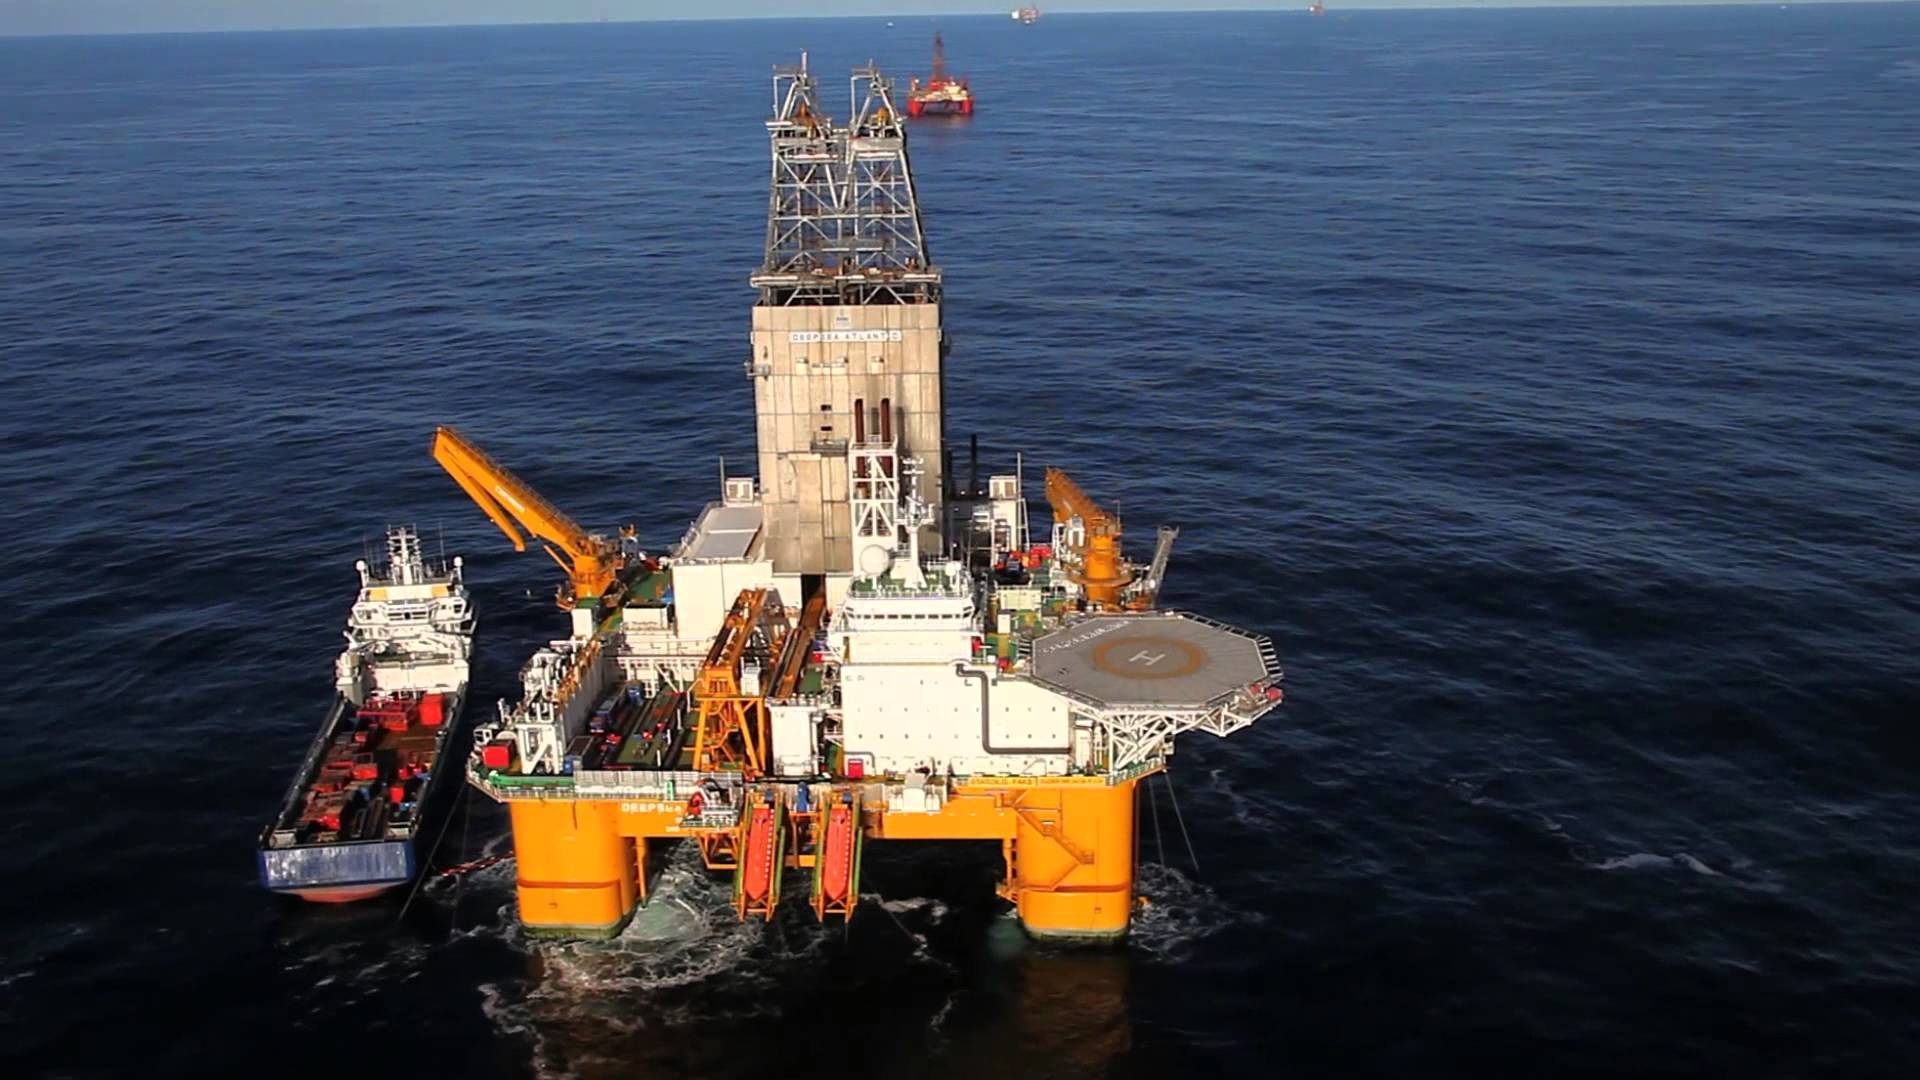 The Deepsea Atlantic is operated by Odfjell Drilling AS.